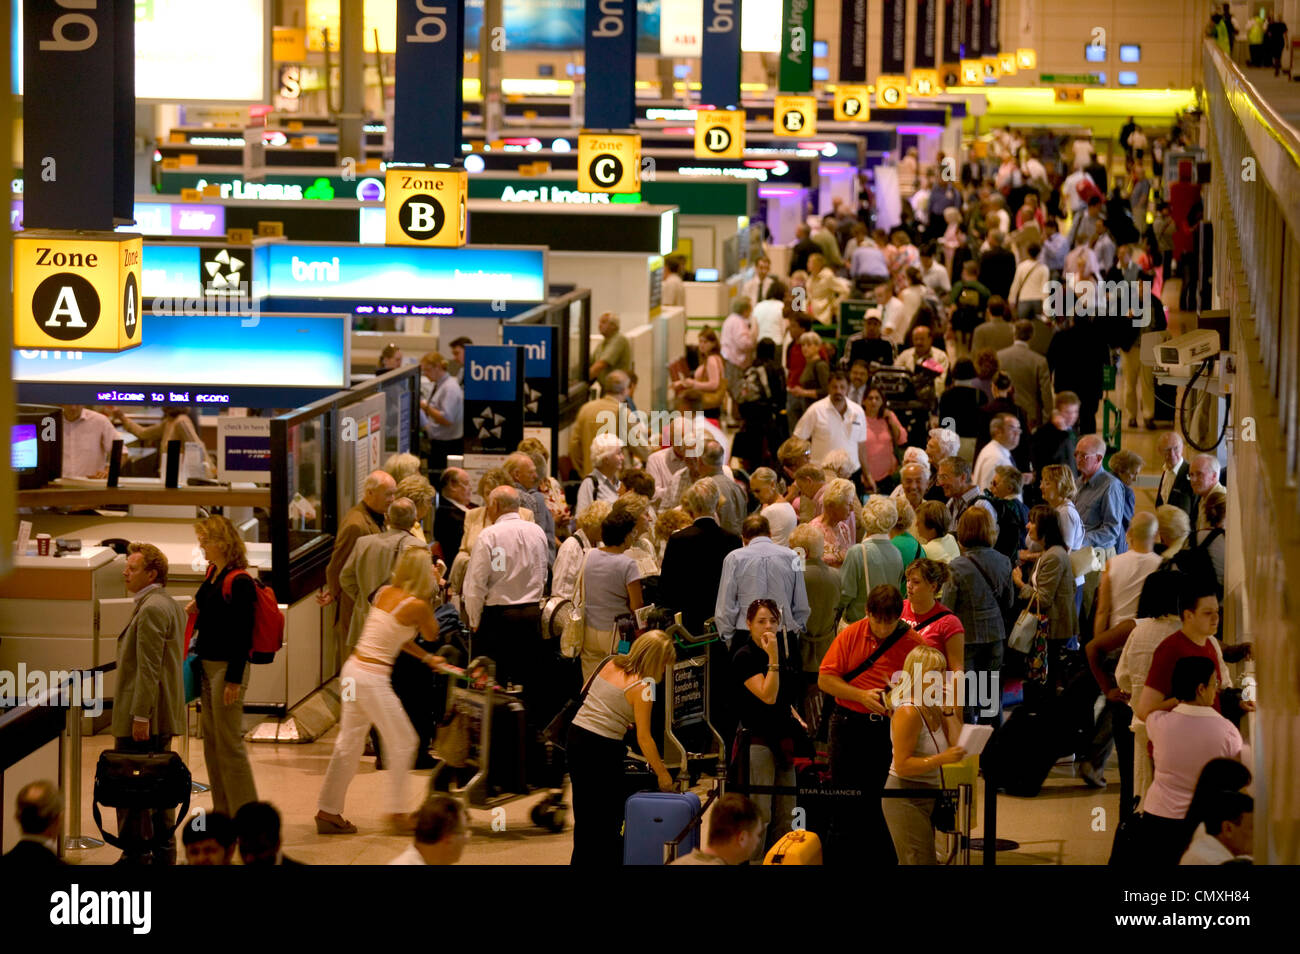 Check-in counters in busy departure lounge at Heathrow airport Stock Photo